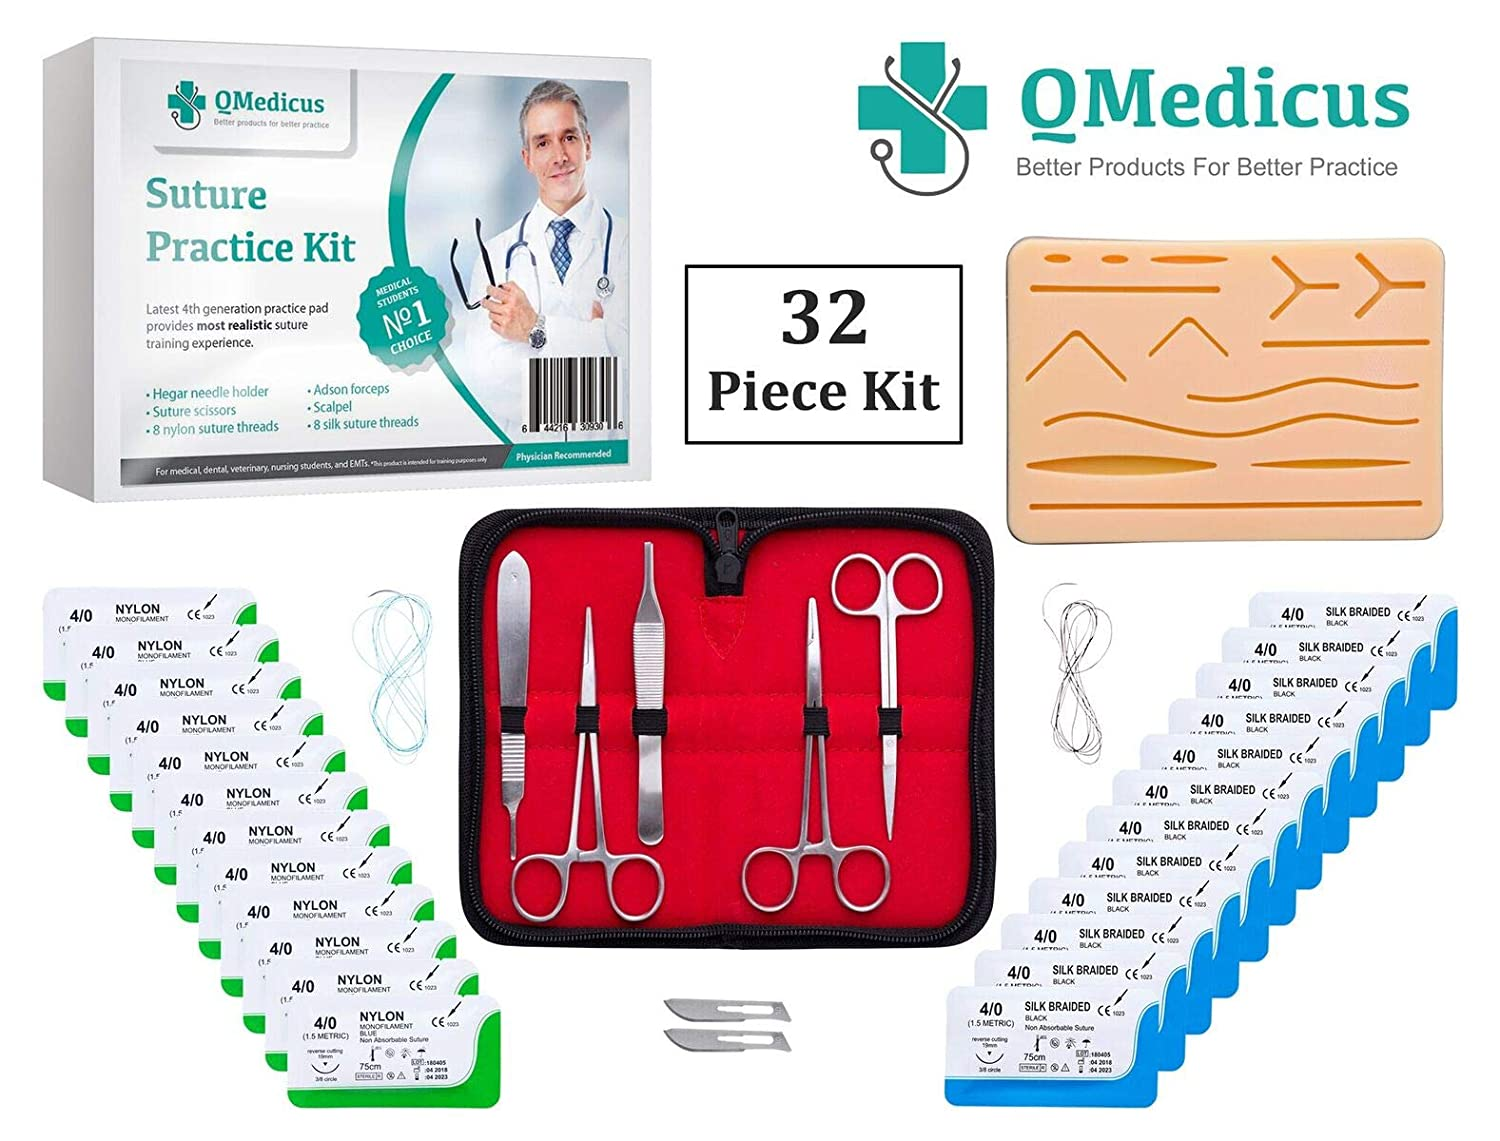 Complete Suture Practice Kit for Suture Training. Includes Full Set of Stainless Tools, 4th Generation Suture Pad with Pre-Cut Wounds, 24 Silk and Nylon Sutures. (for Educational Purposes only.) QMedicus